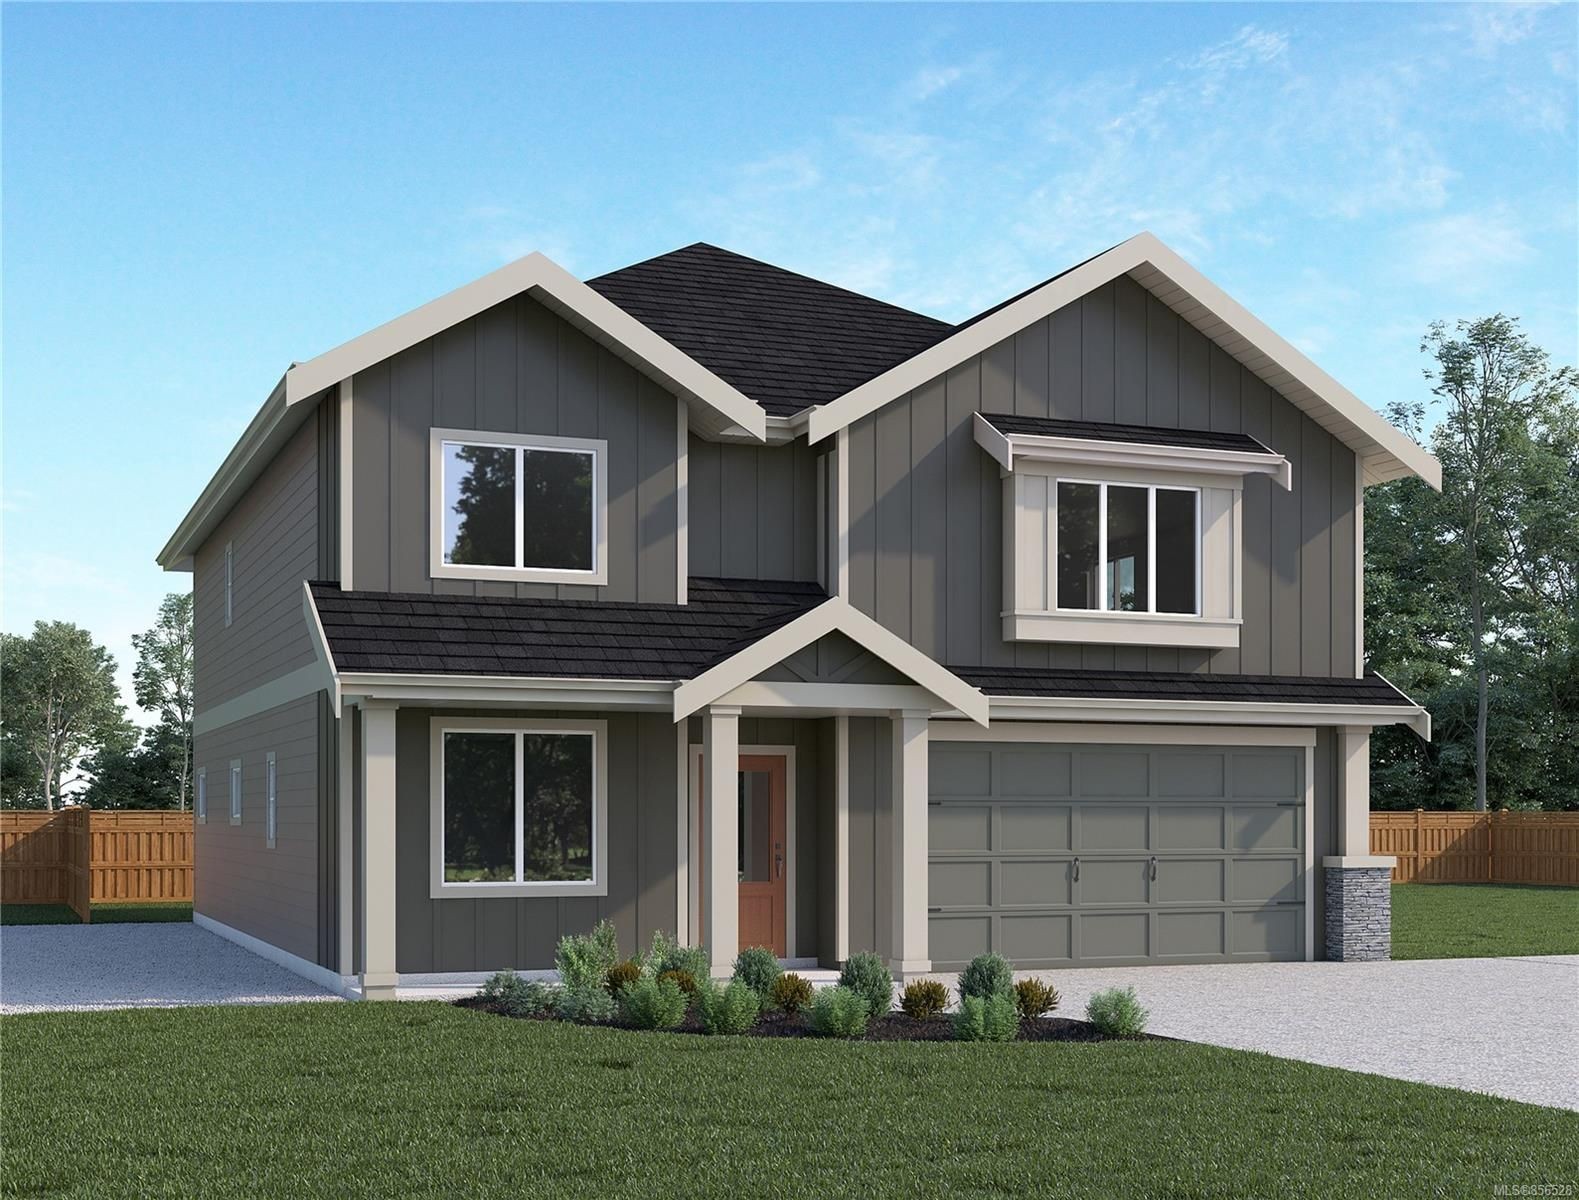 Artist Rendering is of similar plan, but actual construction and colour will vary.